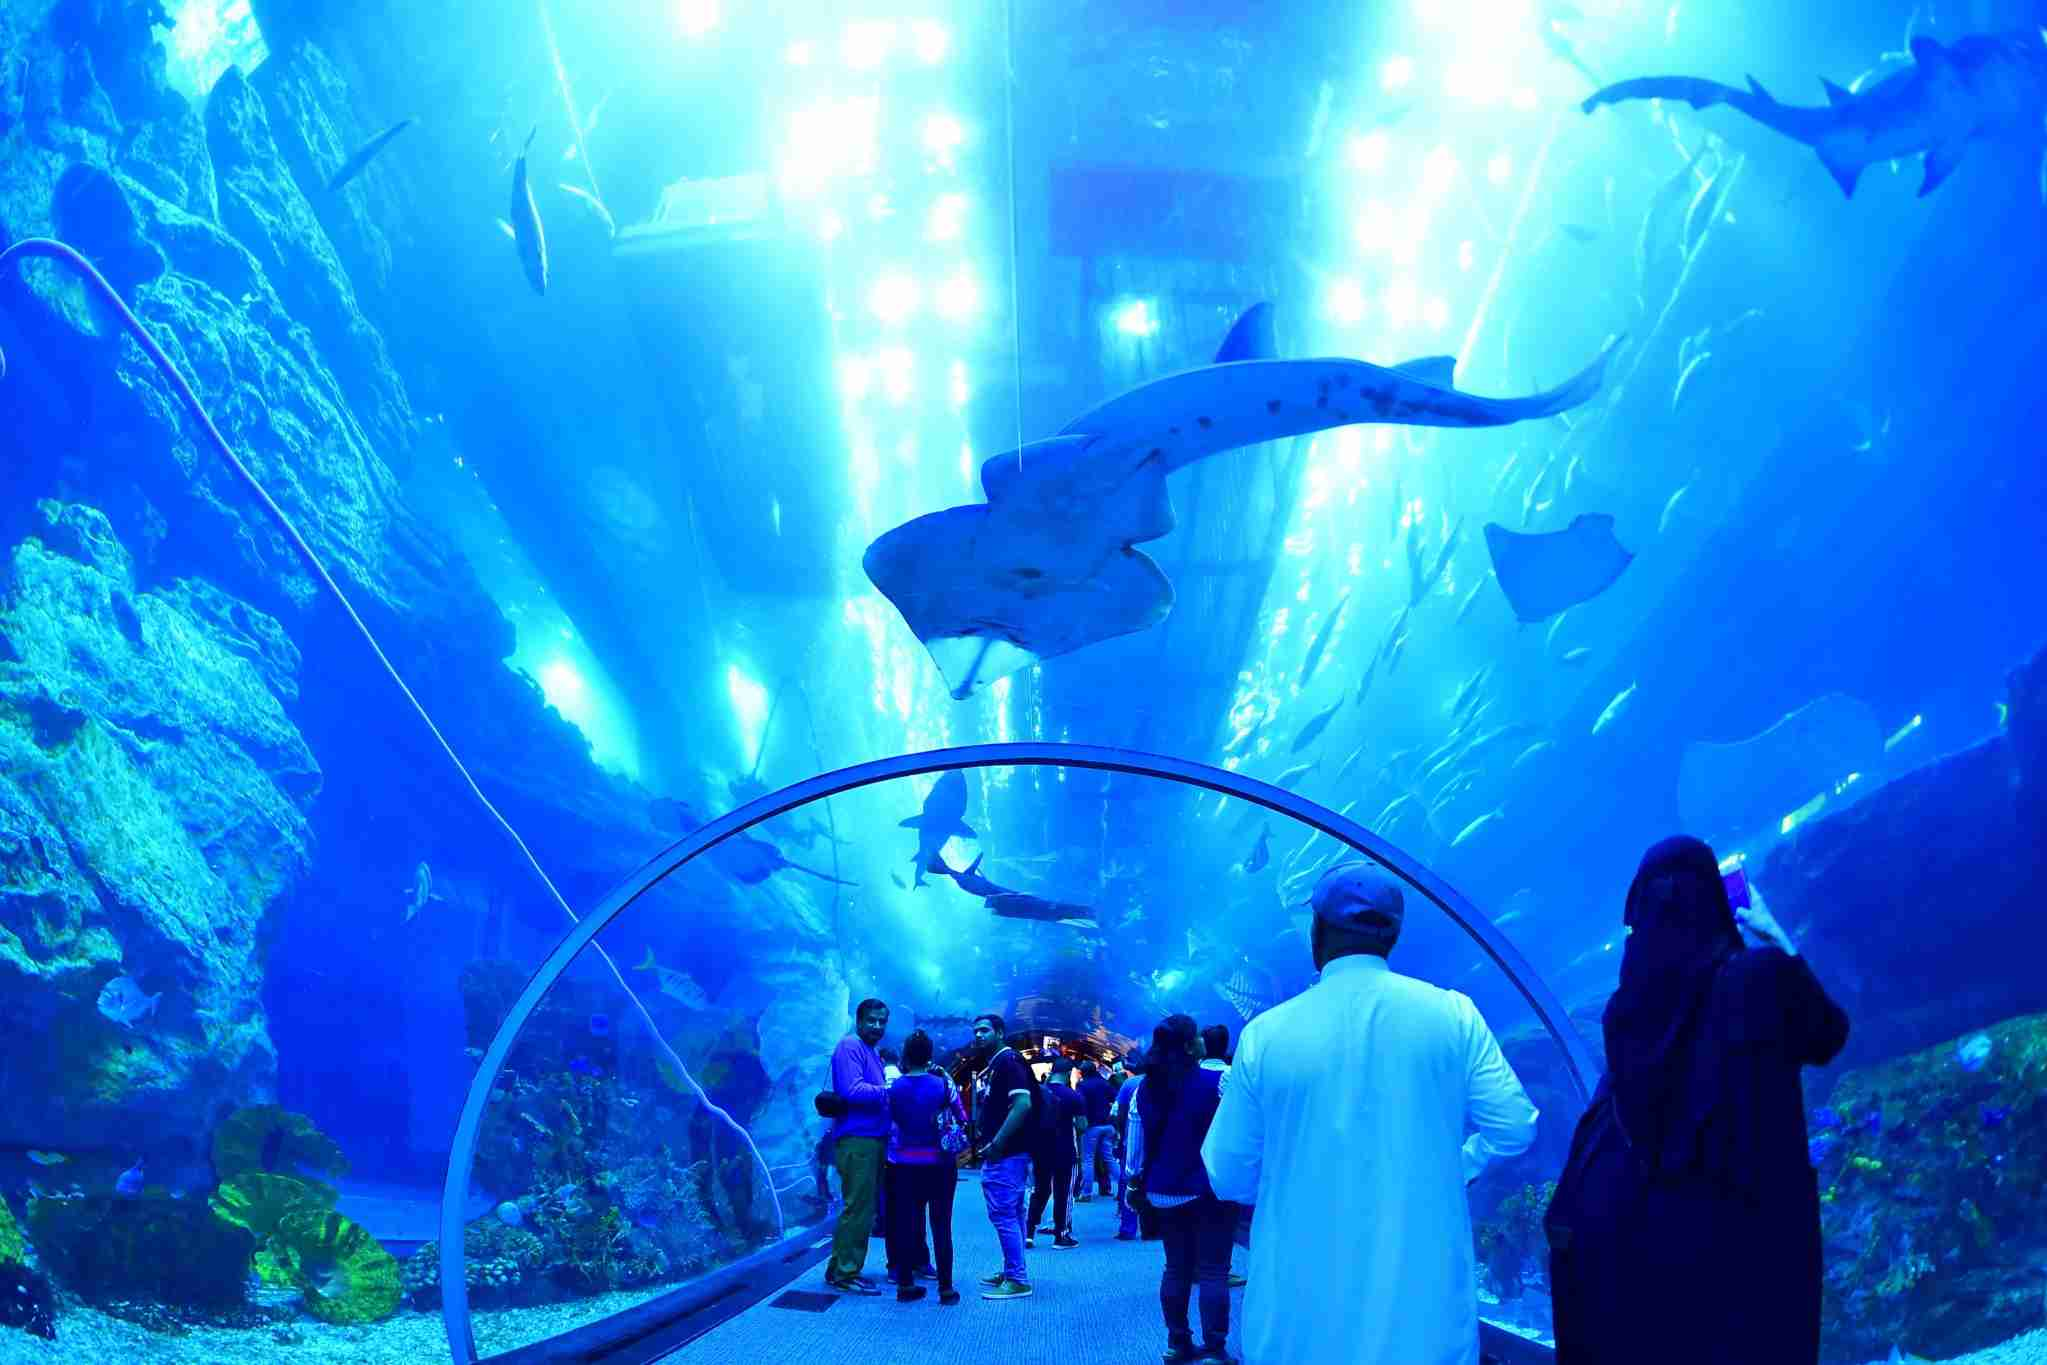 TOPSHOT - Tourists and locals visit the Dubai Mall aquarium in downtown Dubai on January 2, 2019. (Photo by GIUSEPPE CACACE / AFP) (Photo credit should read GIUSEPPE CACACE/AFP/Getty Images)